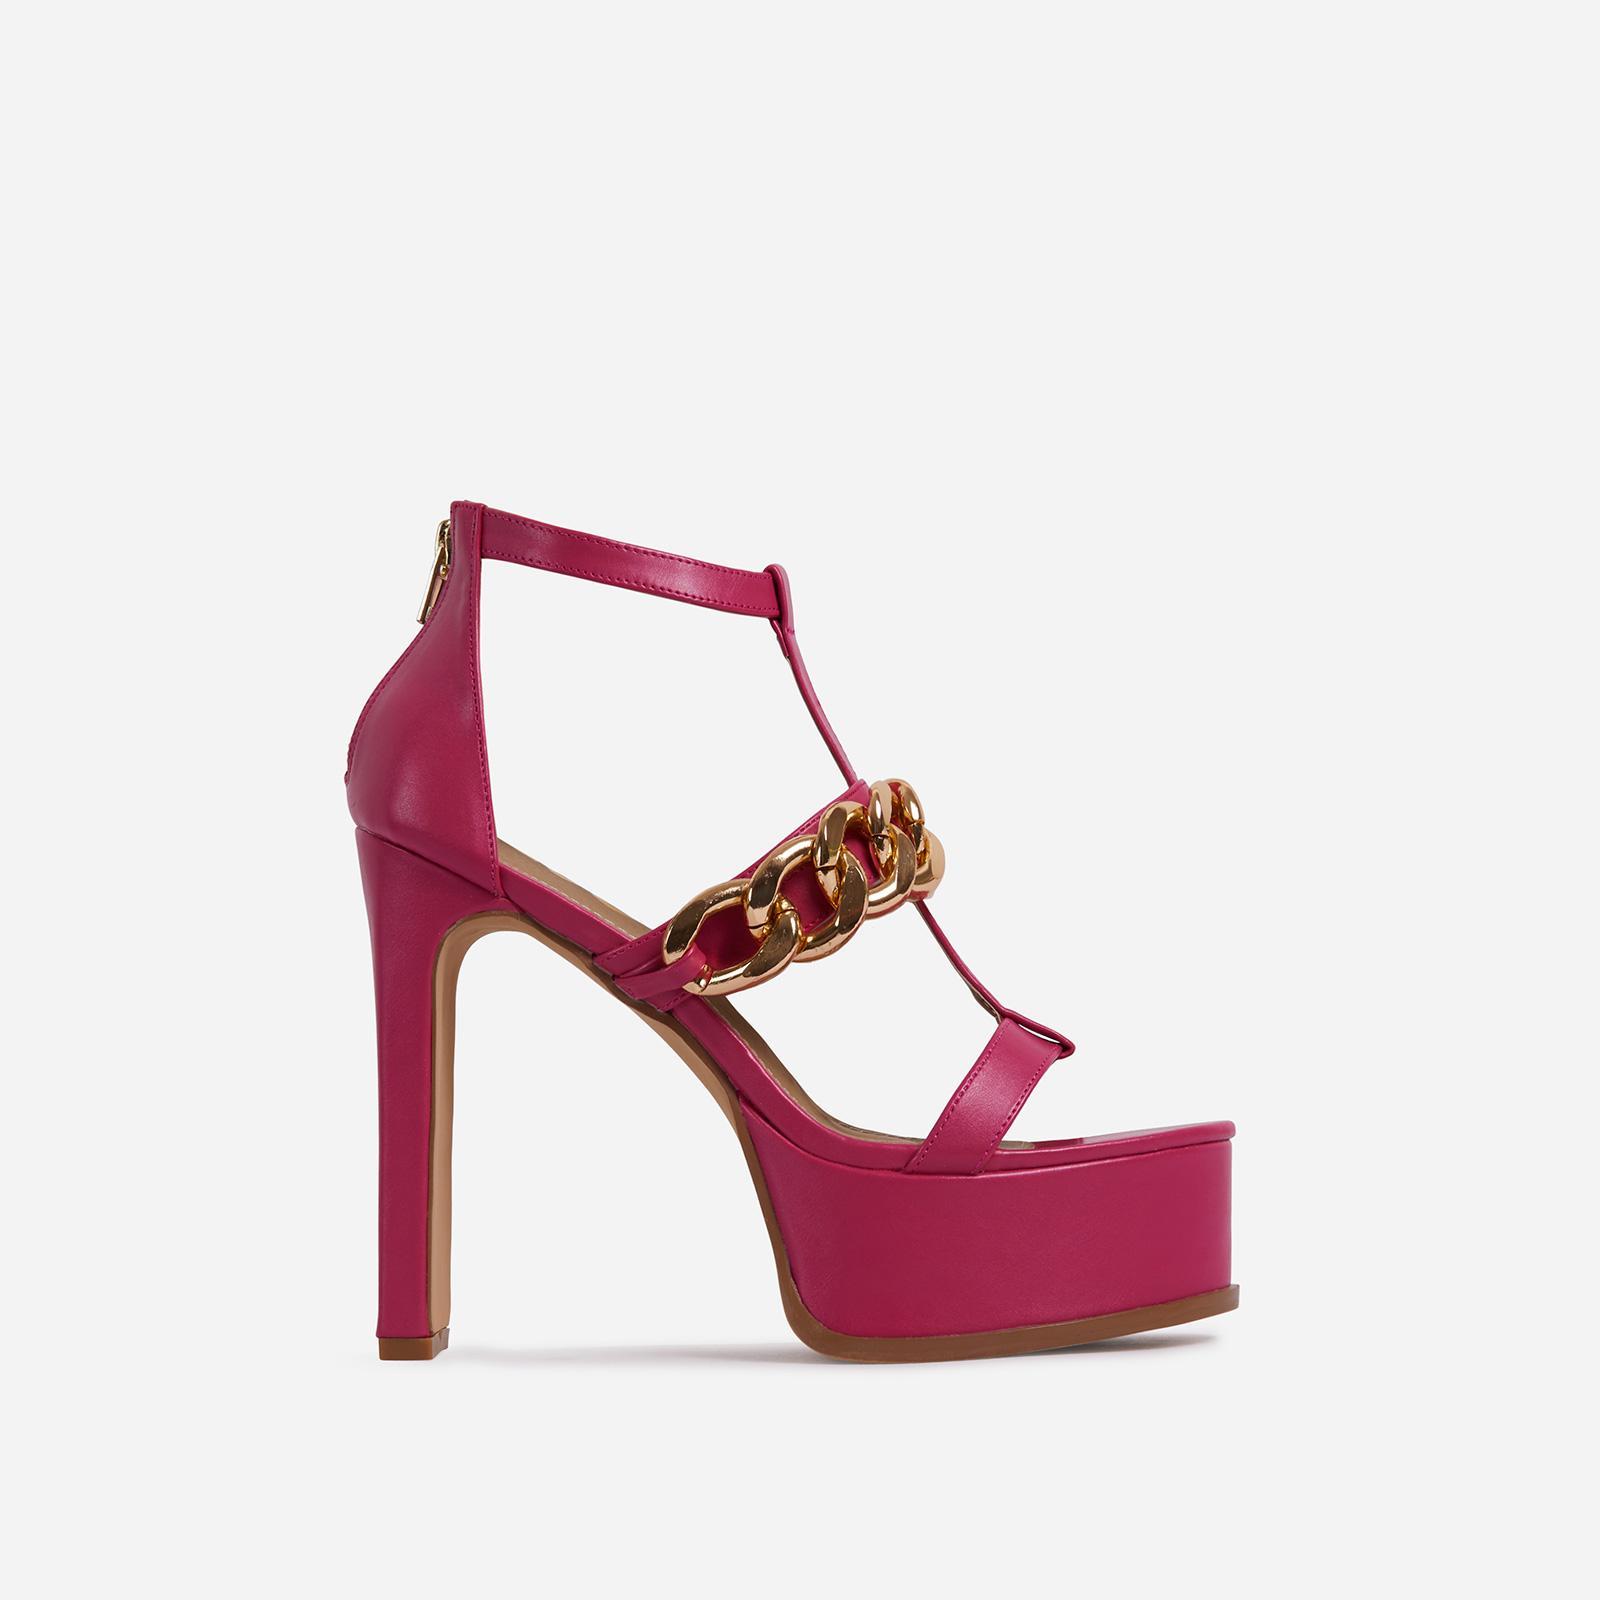 Belma Chain Detail Caged Platform Thin Block Heel In Fuchsia Pink Faux Leather, Pink